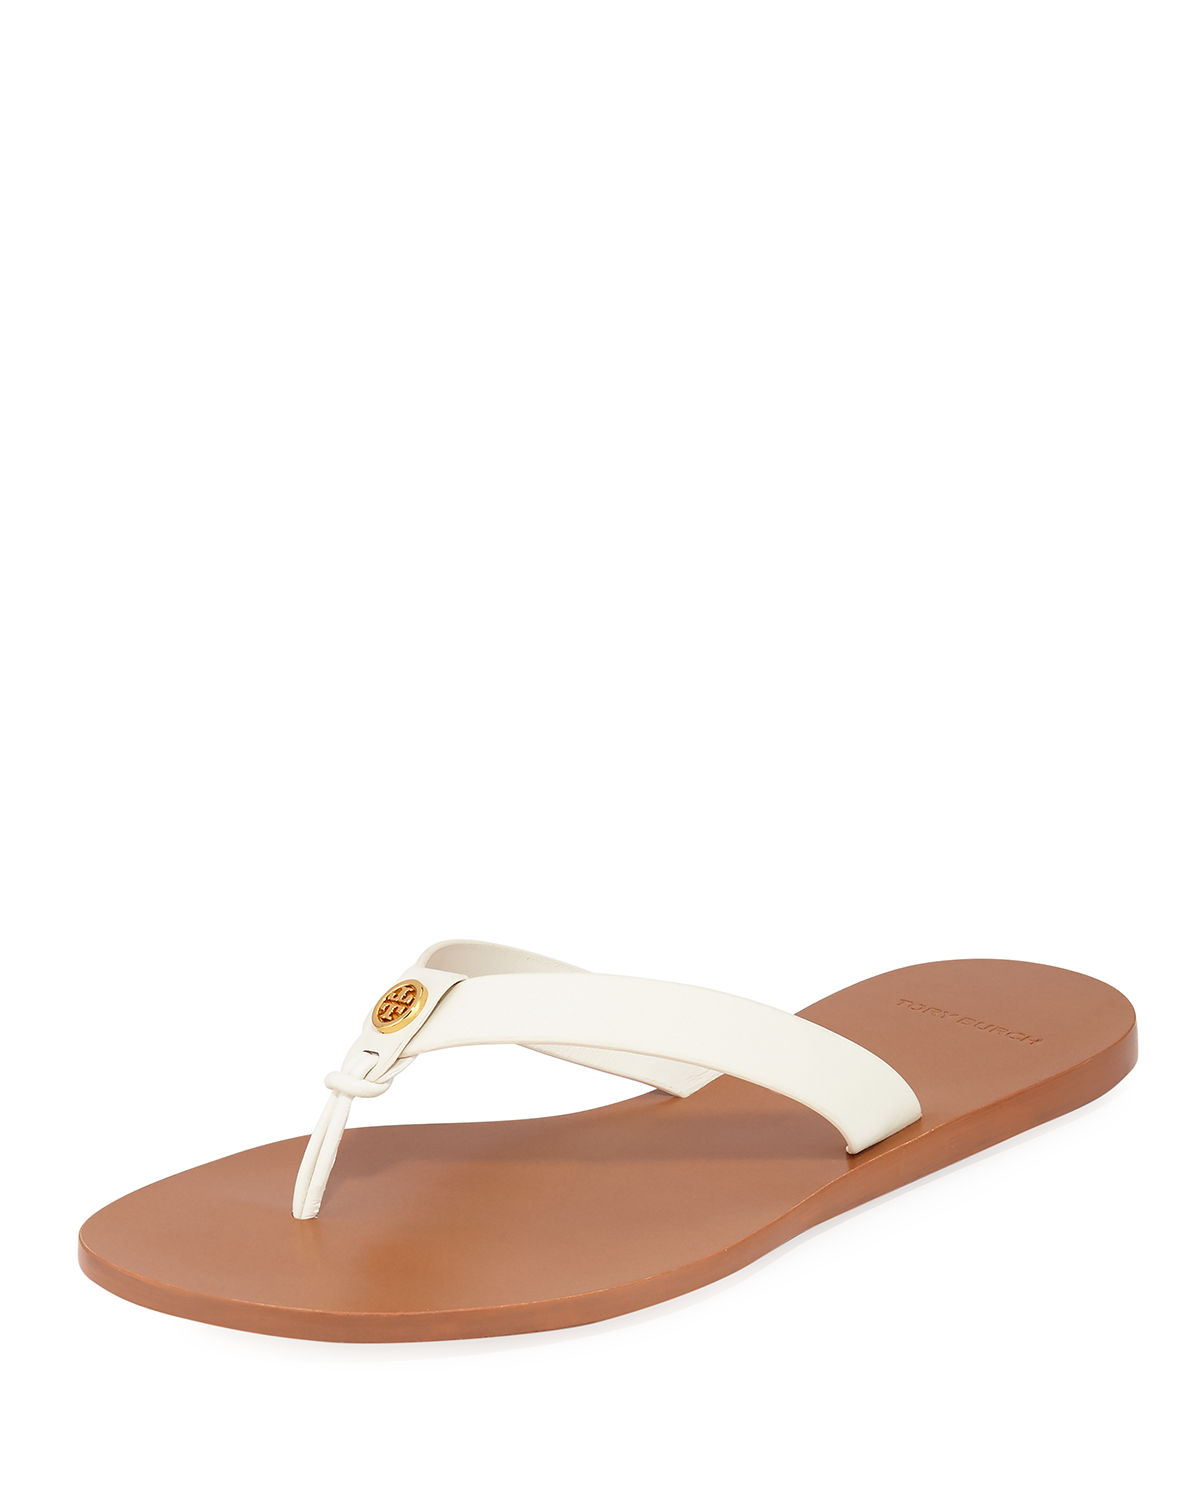 d519988f2248b4 Tory Burch Manon Leather Thong Sandals In Ivory